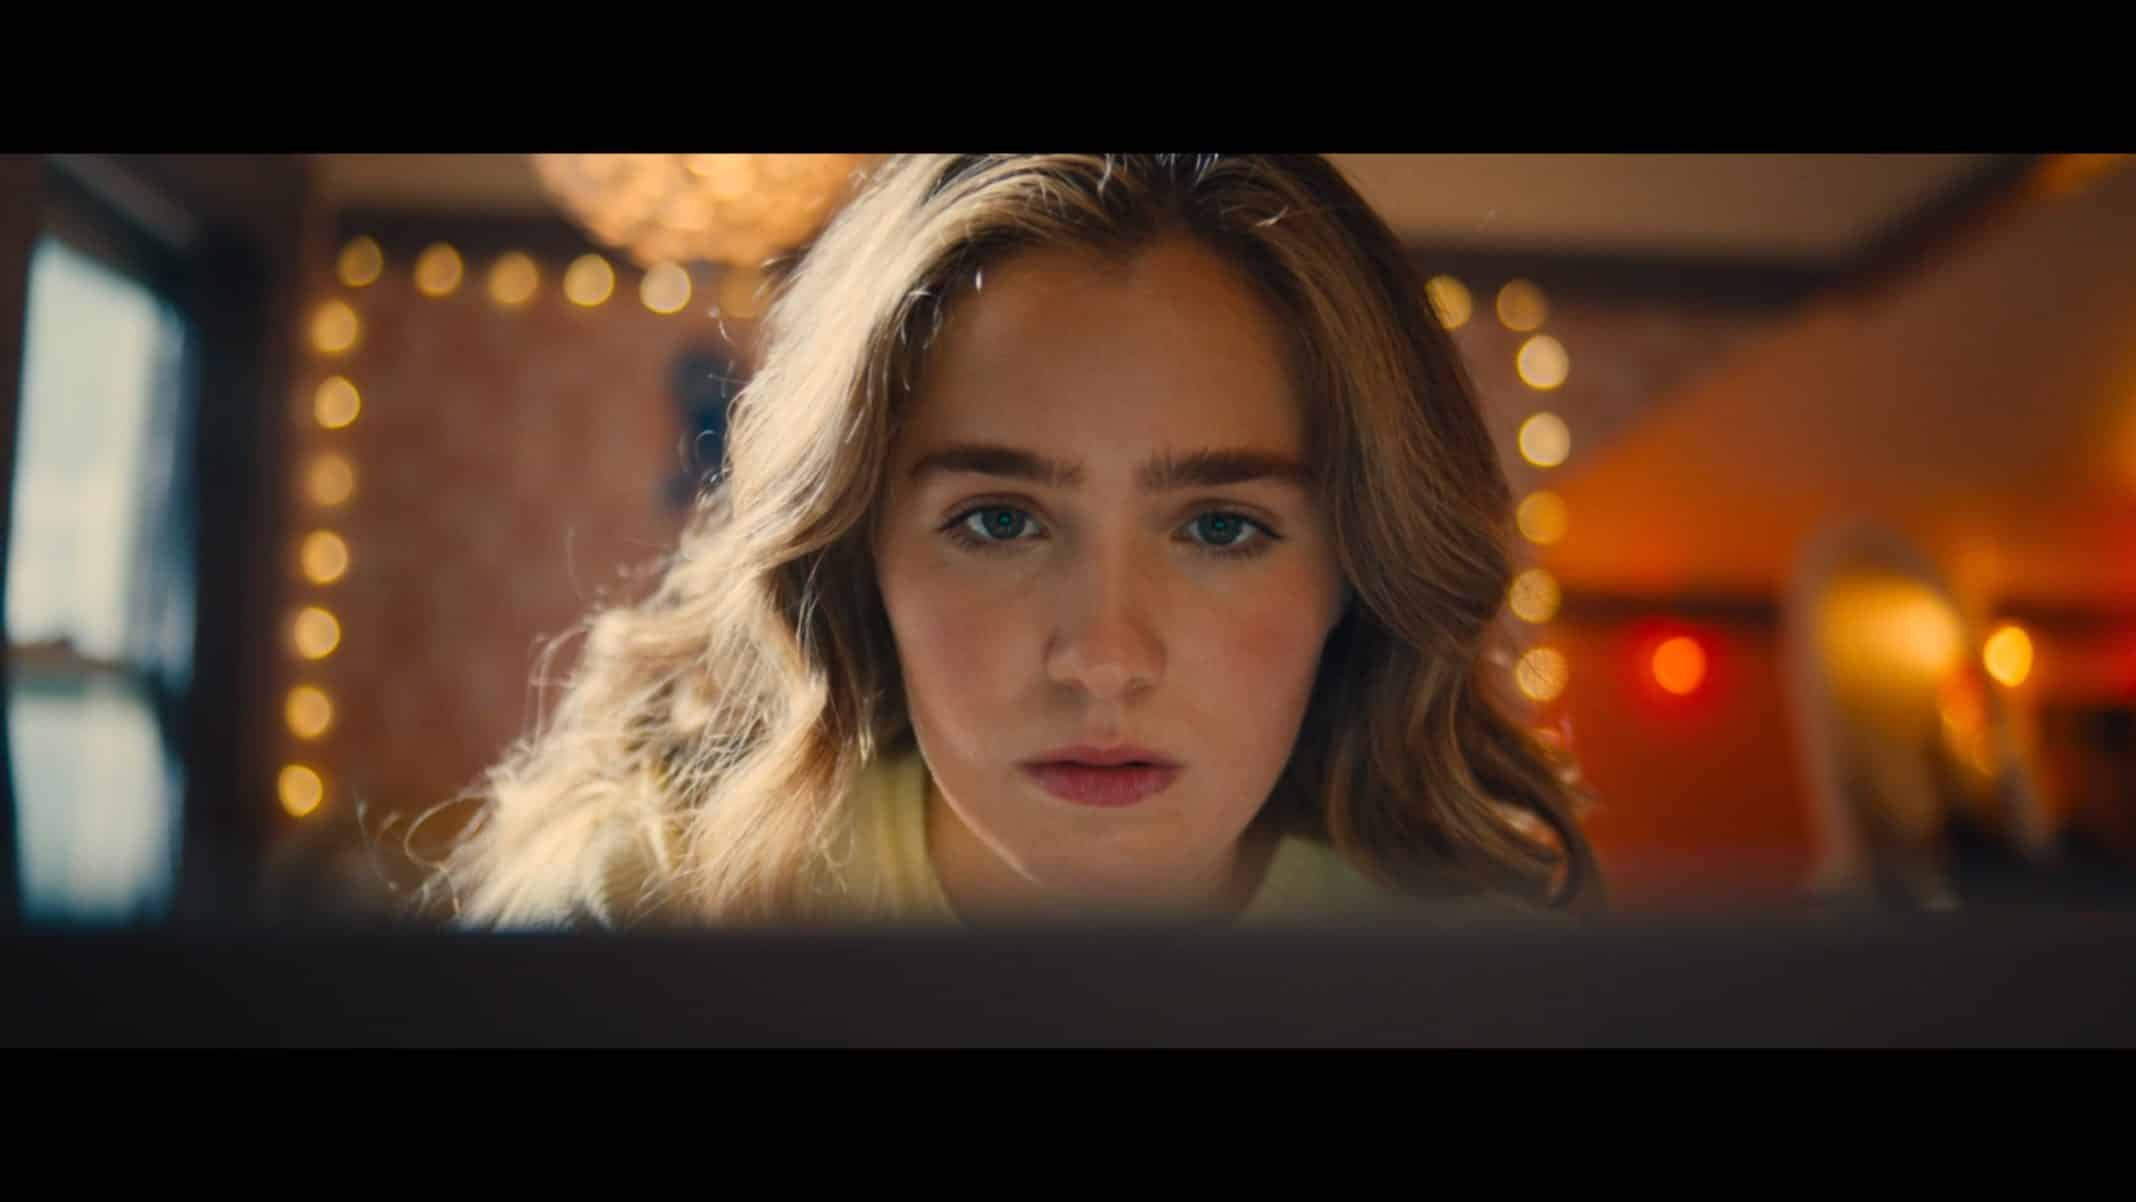 Veronica (Haley Lu Richardson) looking for directions to the nearest abortion clinic.